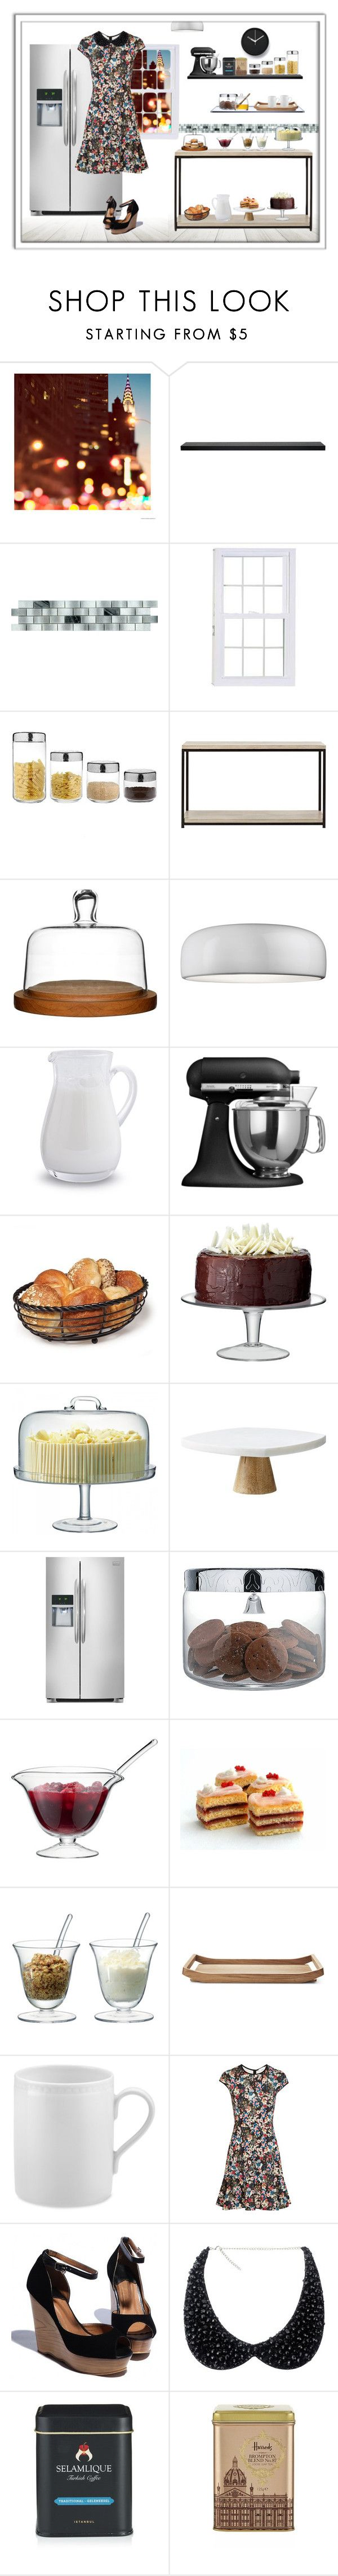 """""""Dinner for friends..."""" by m2ri ❤ liked on Polyvore featuring URBN, Craftsman, Alessi, Home Decorators Collection, Sagaform, Flos, Sur La Table, KitchenAid, Mikasa and LSA International"""